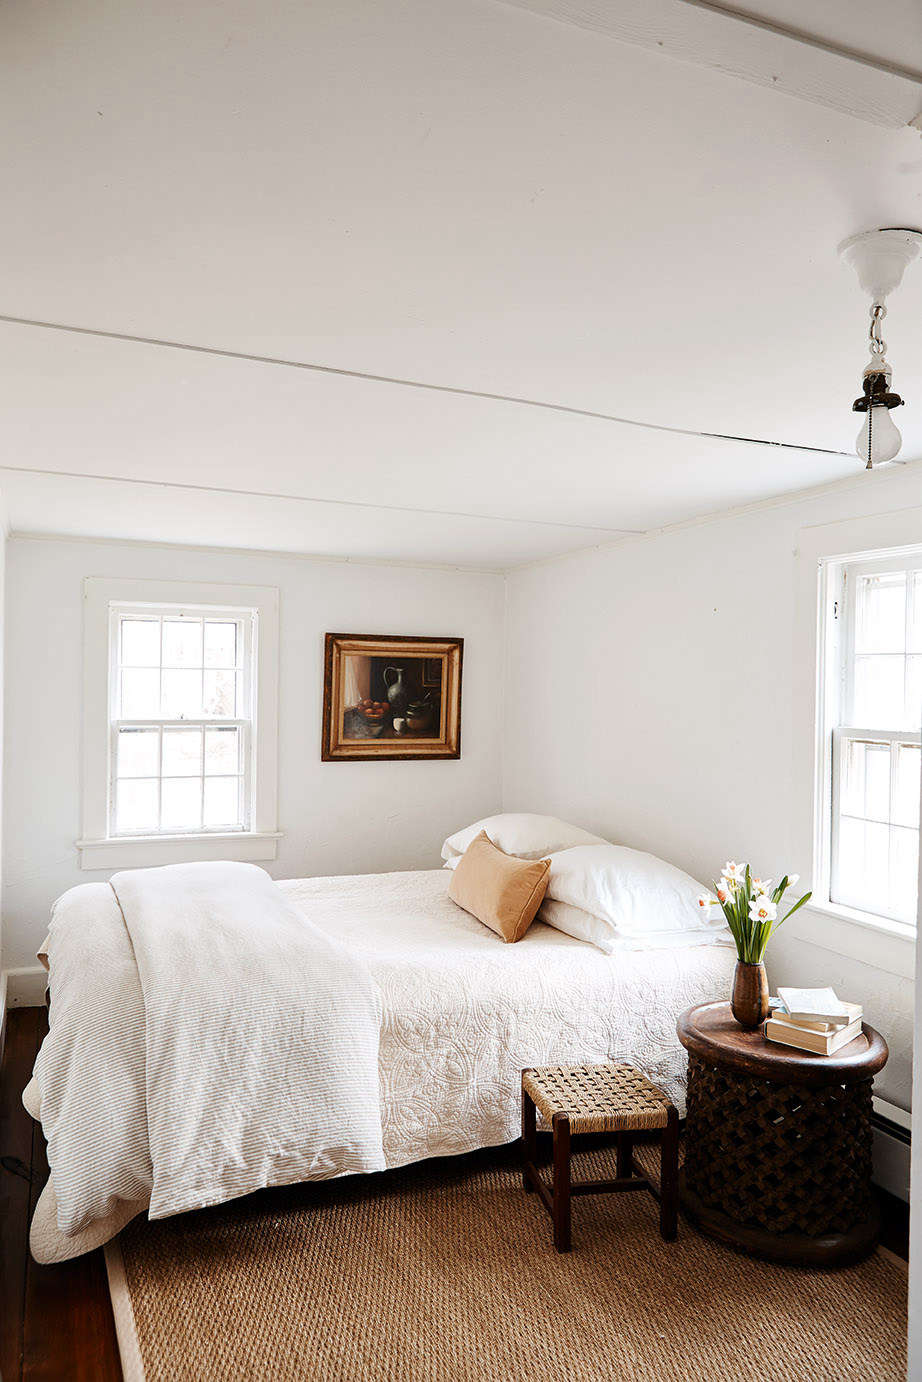 While collections of his favorite objects and art can be found in the main living areas, the sleeping quarters remain pleasingly serene and bare.